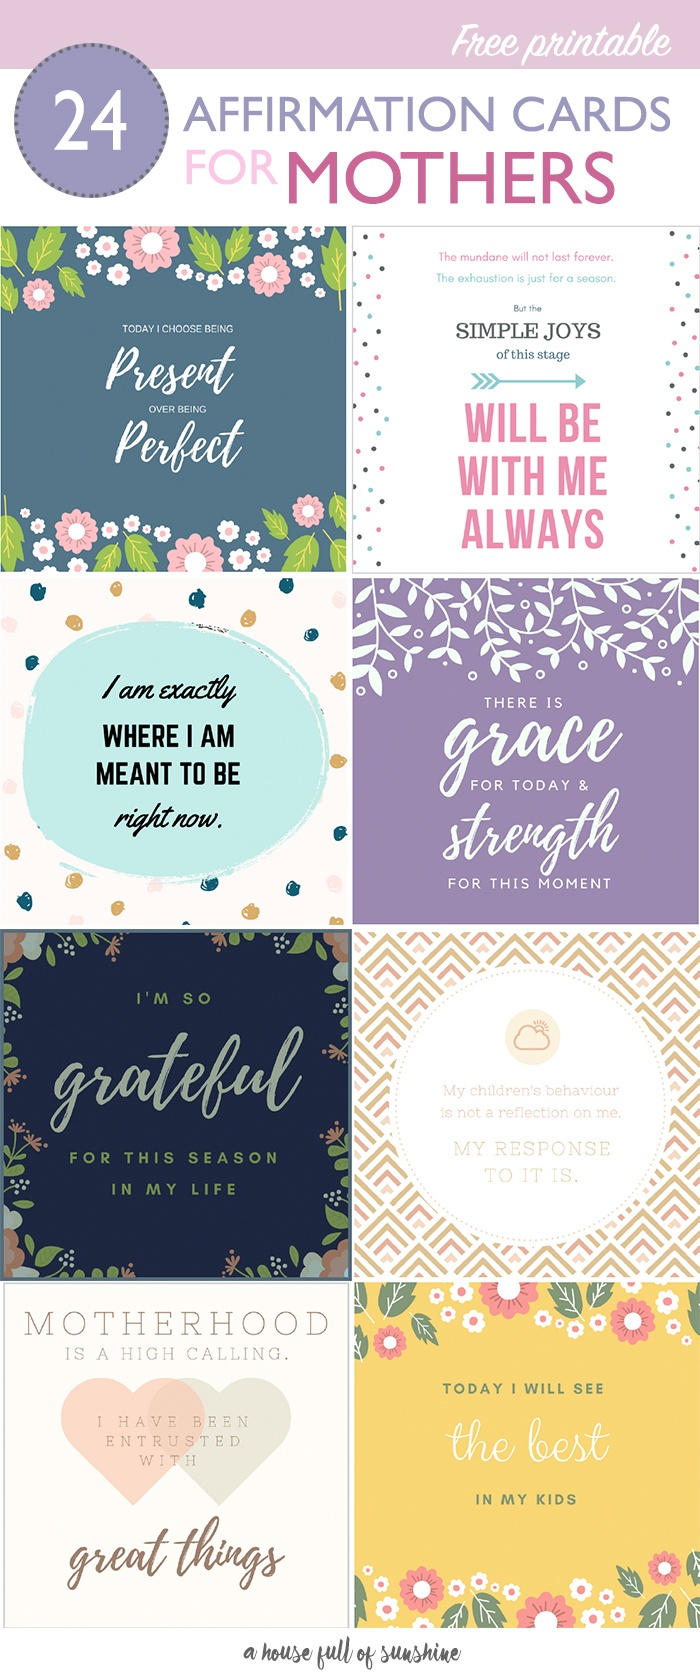 Free Printable Affirmation Cards For Mothers | A House Full Of Sunshine - Free Printable Affirmation Cards